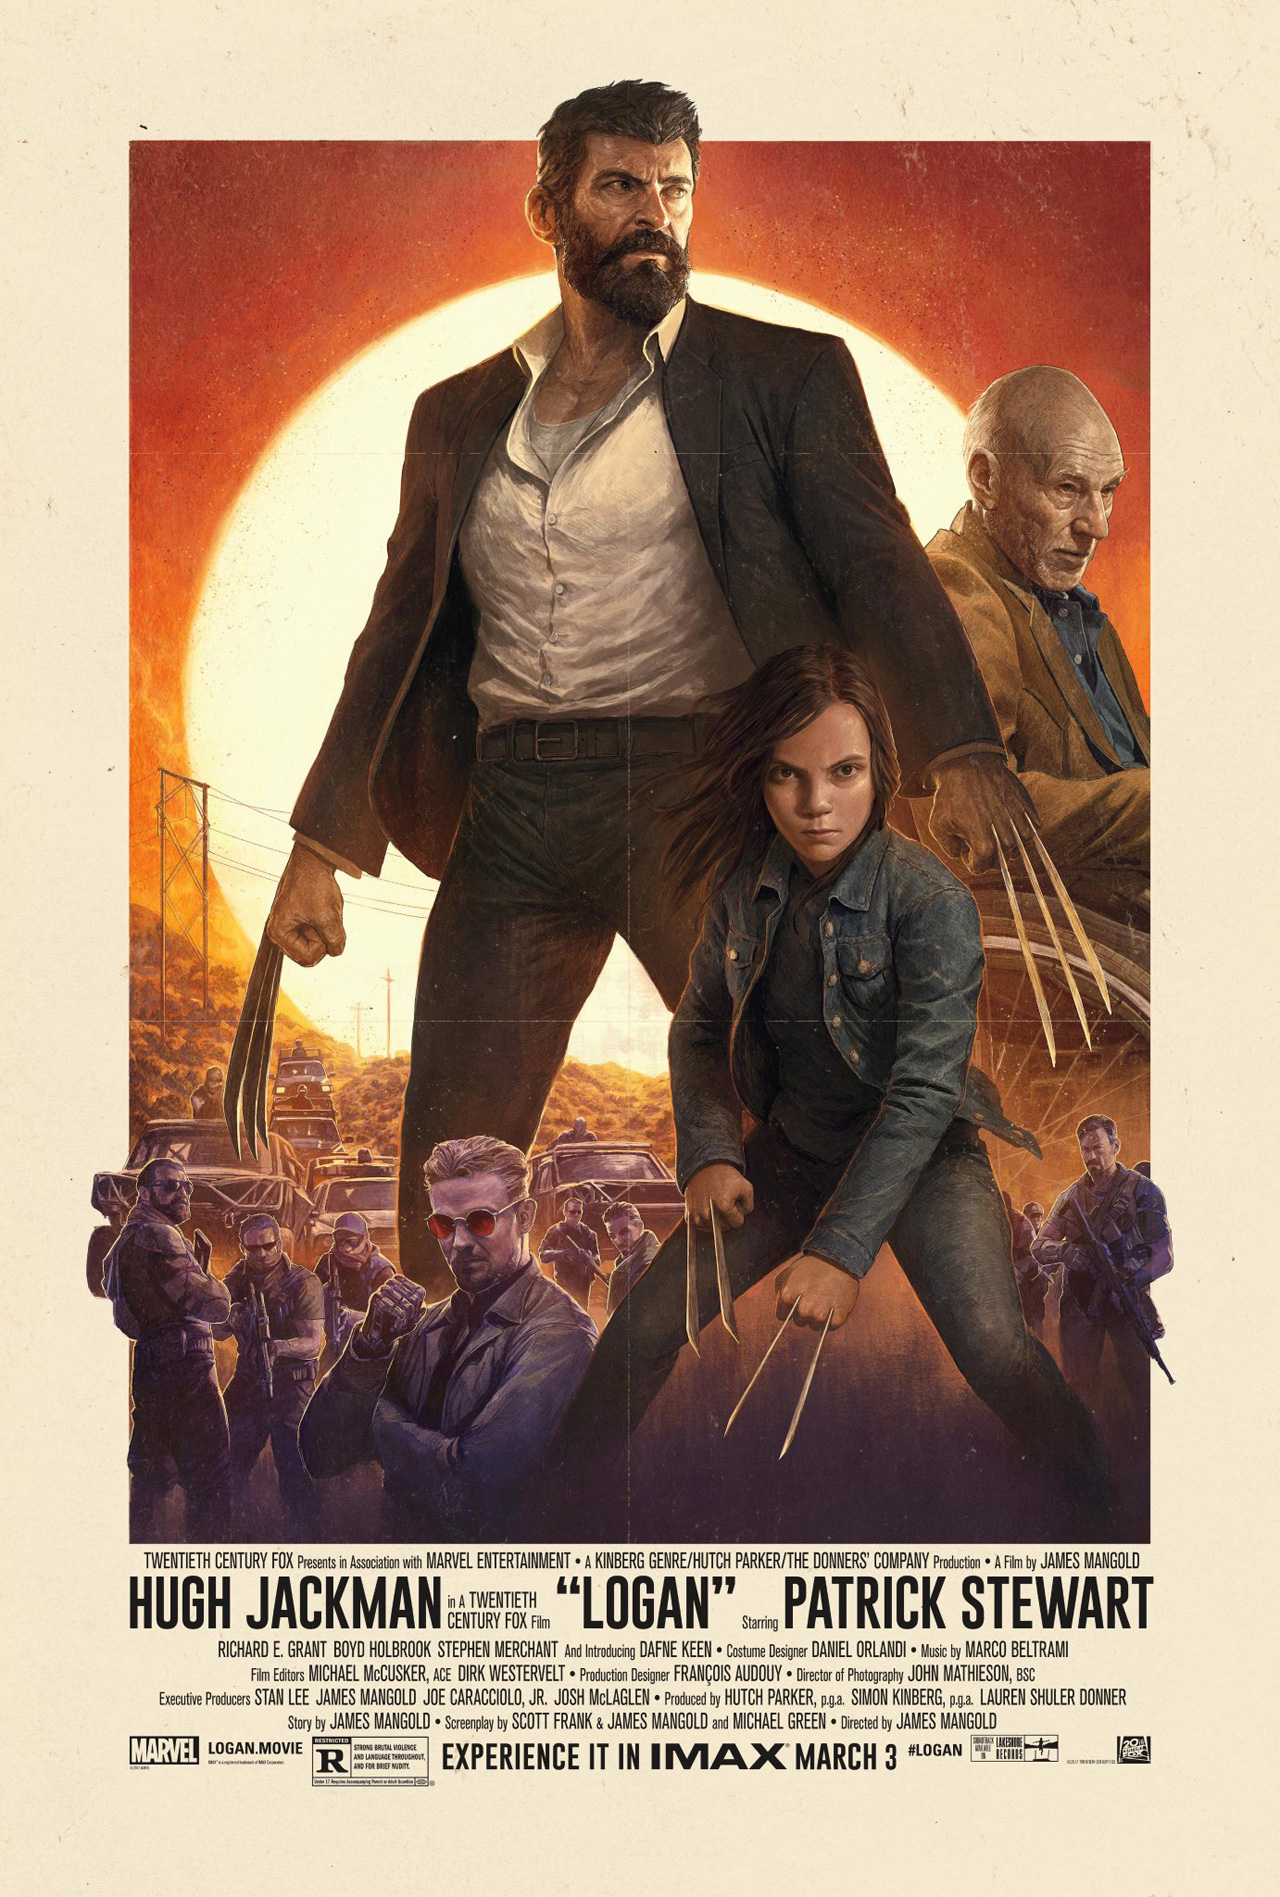 IMAX Poster For Logan Paints James Mangold's Thriller As An Old-School Western